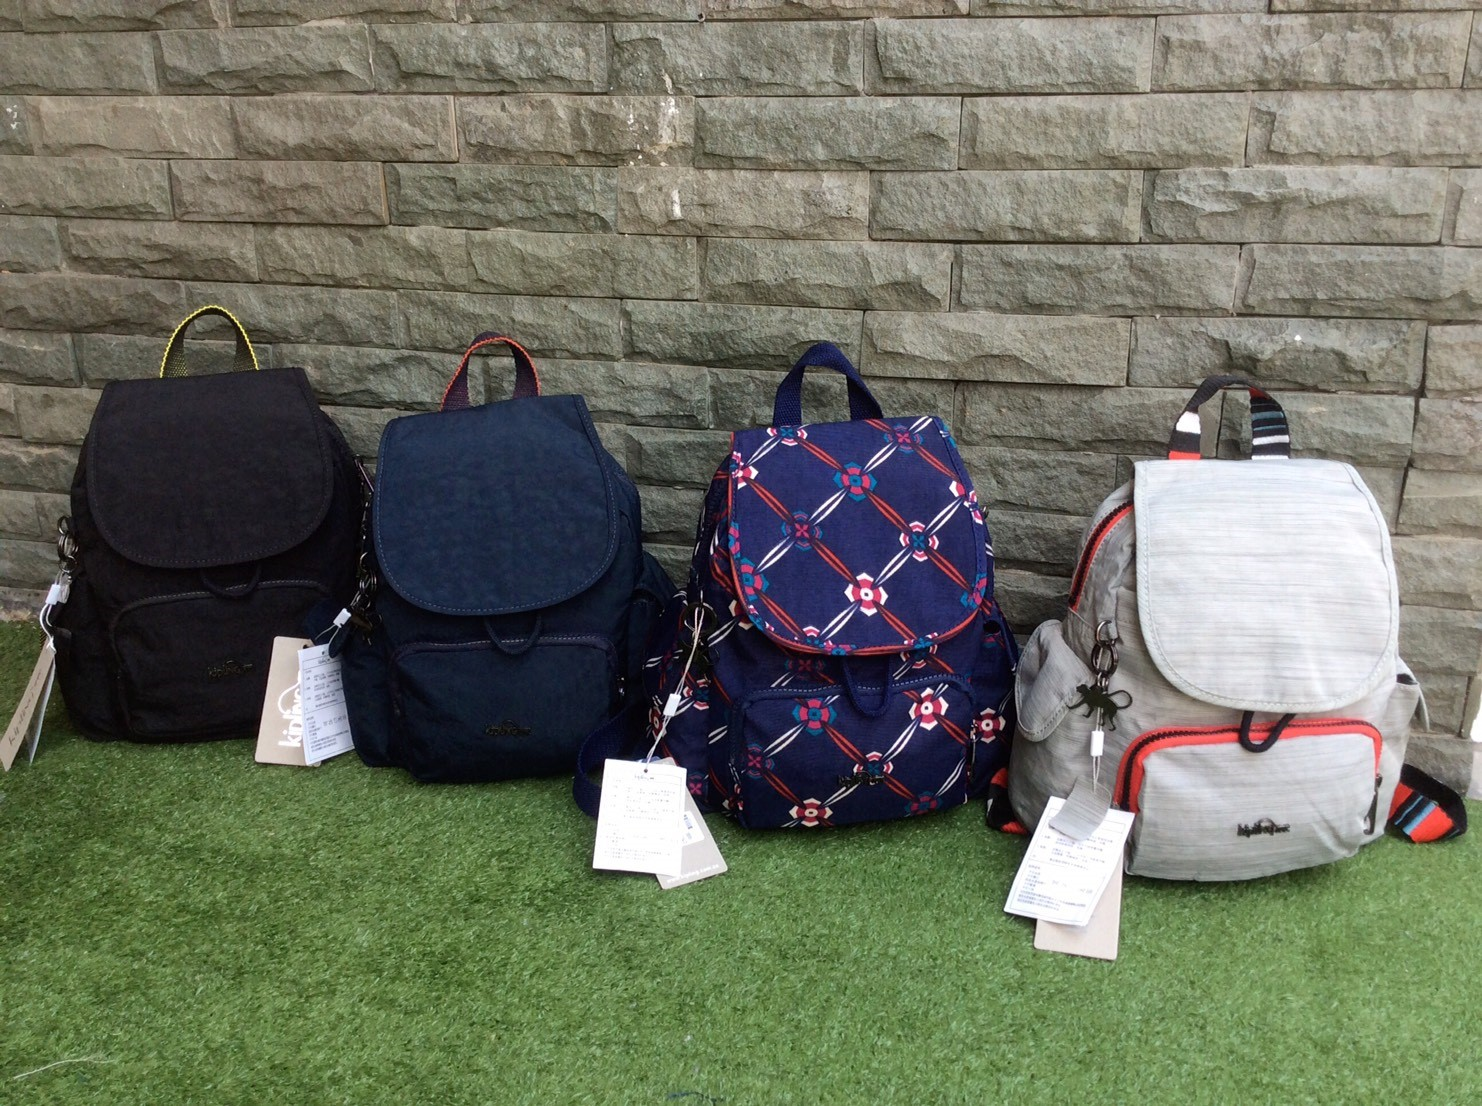 Kipling k23525 Casual Lightweight Backpack Outlet HK มี 4 สี.ให้เลือก